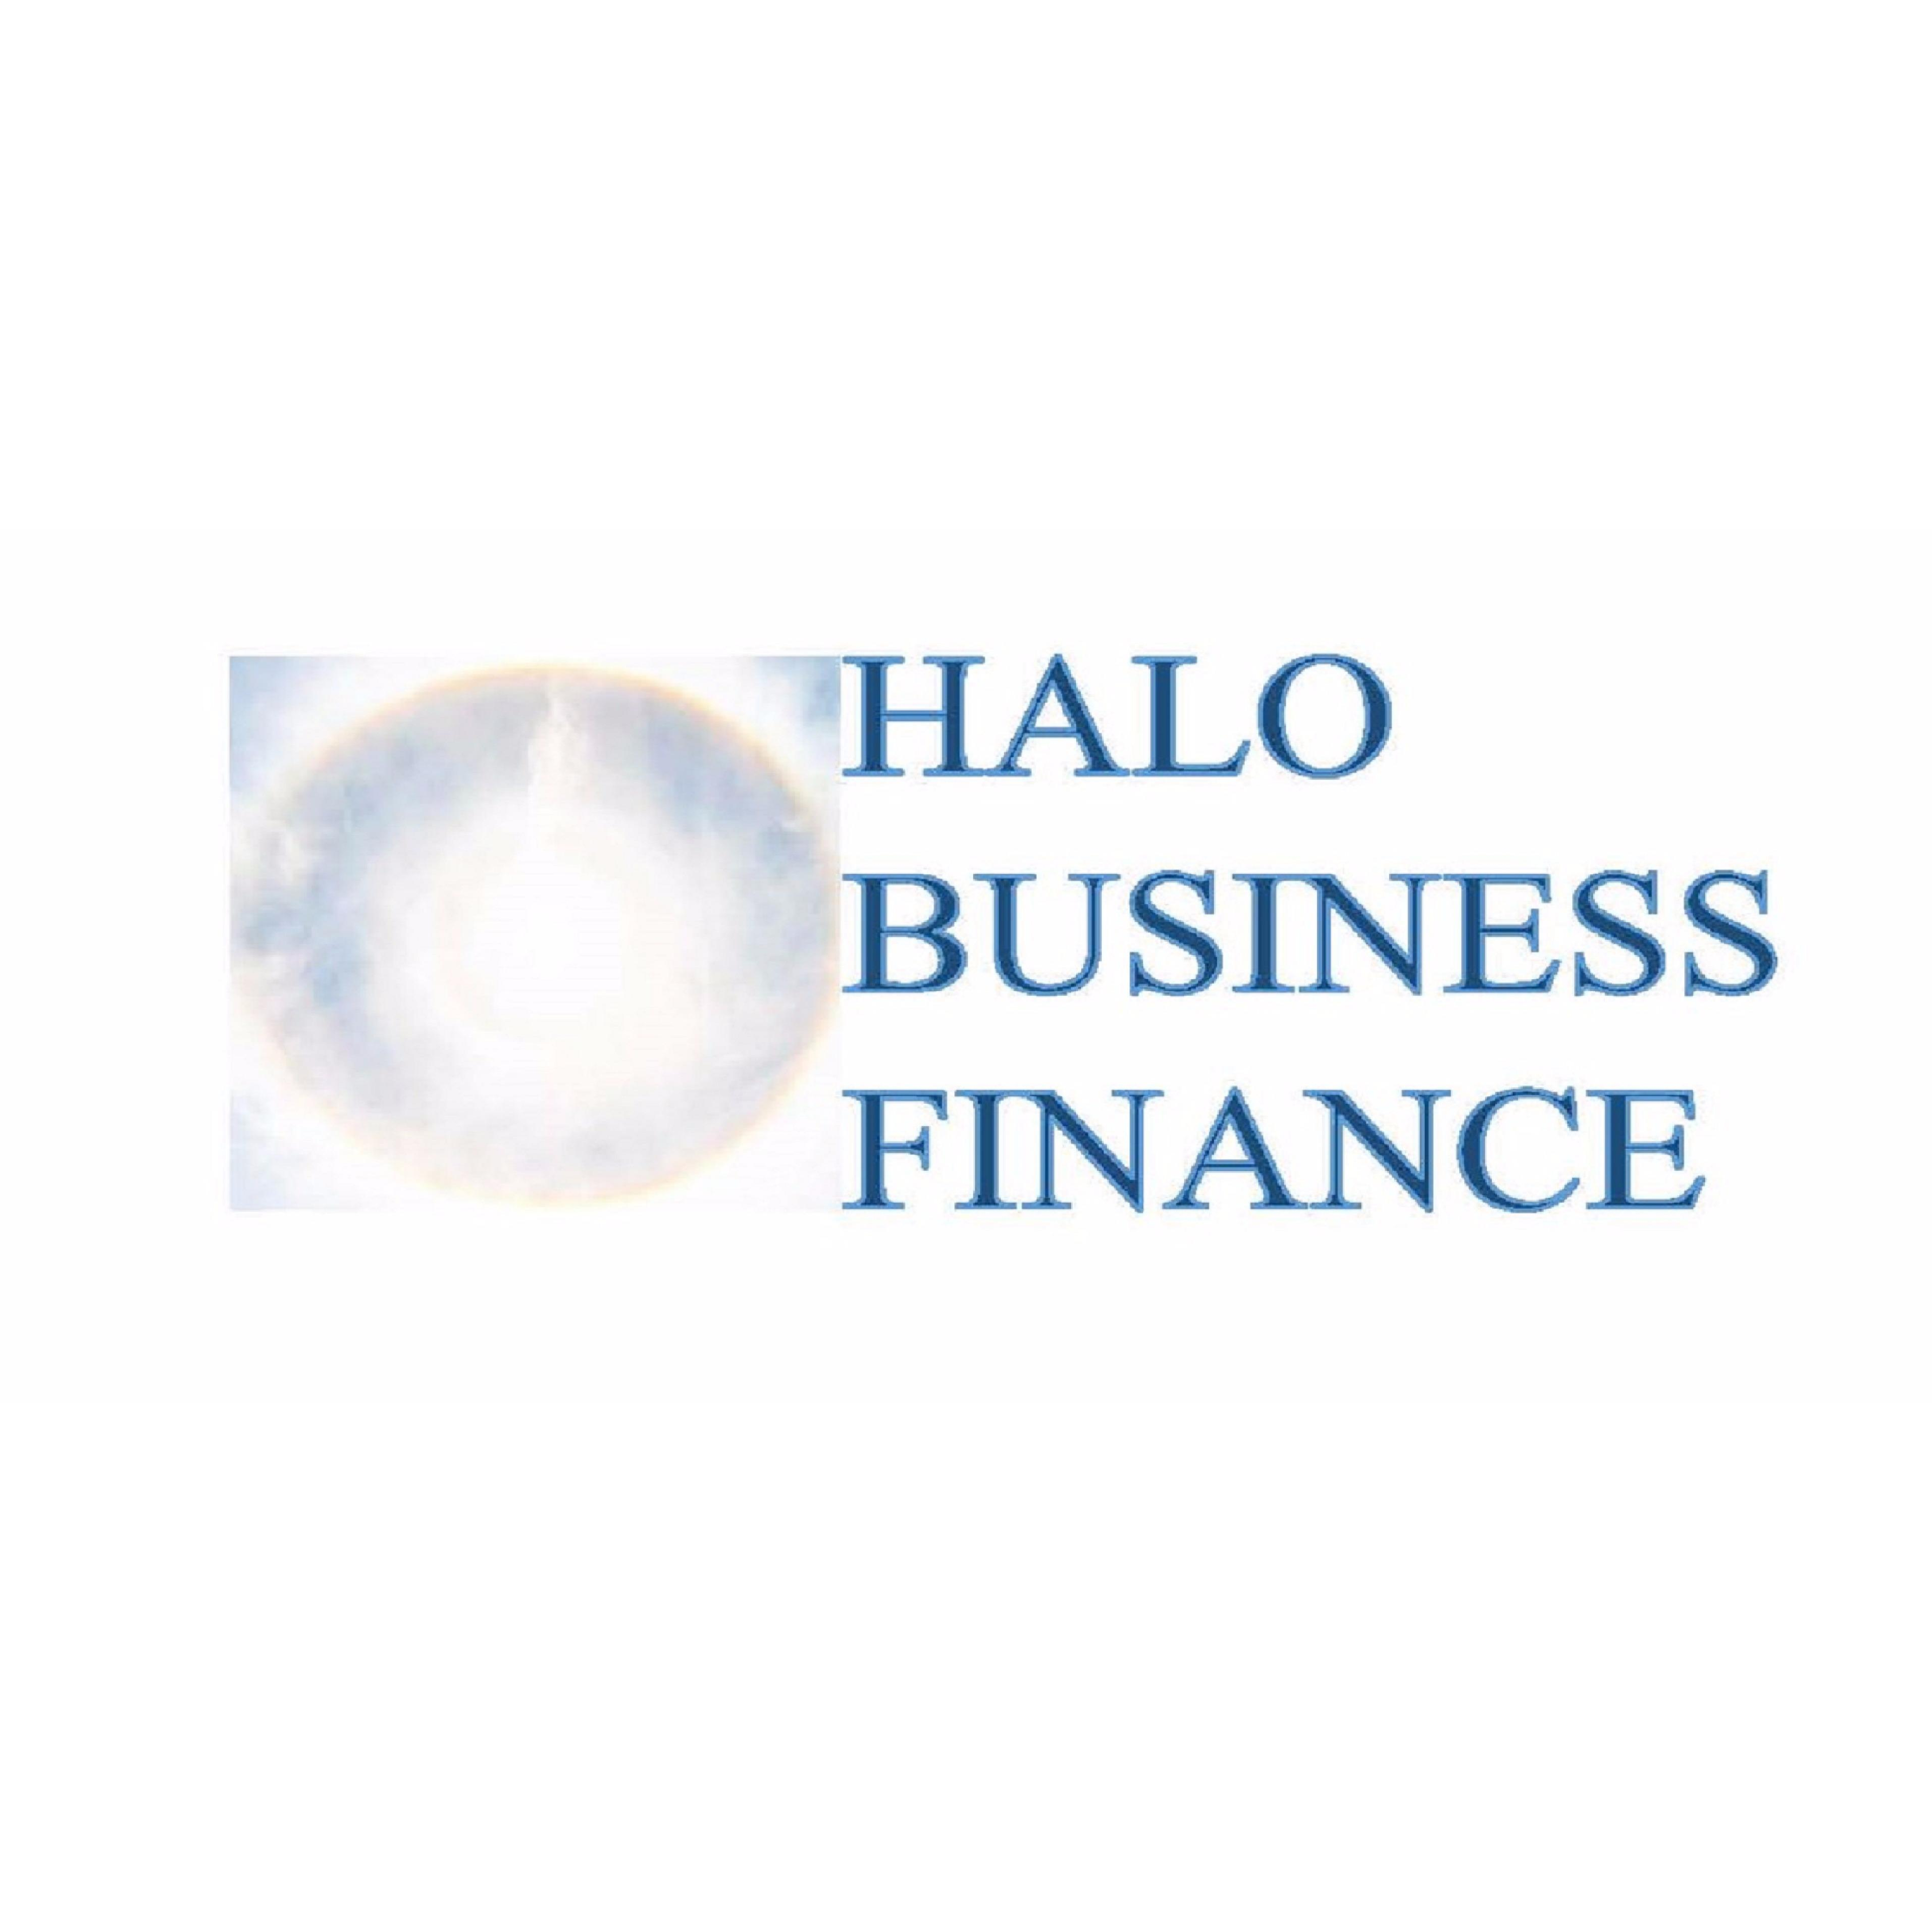 Halo Business Finance Corp.